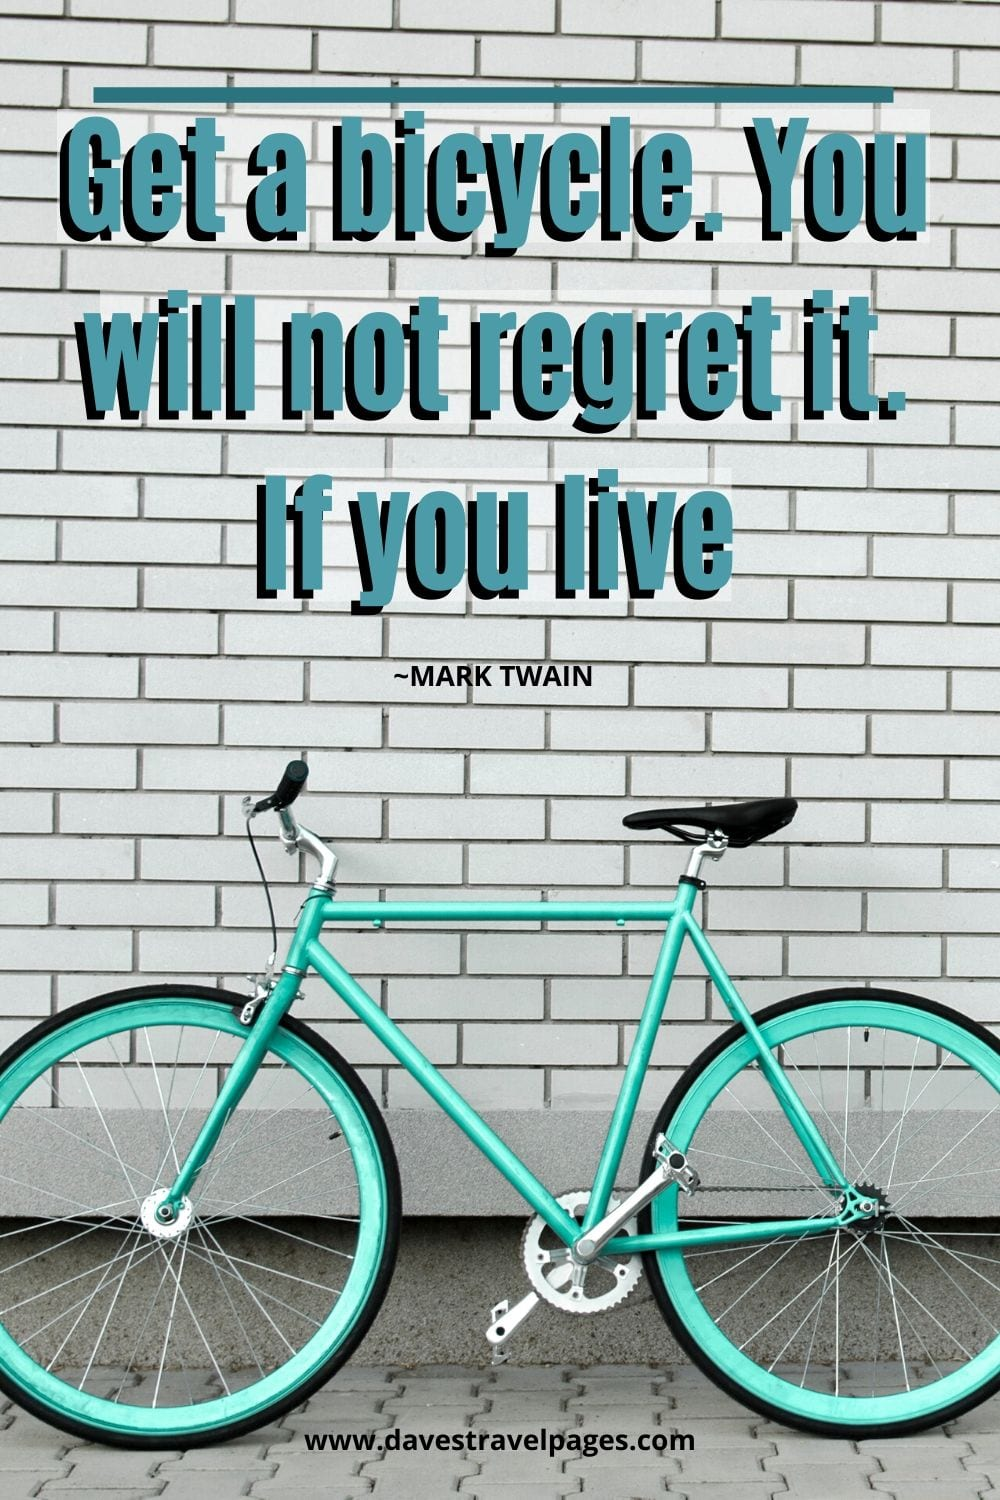 Get a bicycle. You will not regret it. If you live. ~Mark Twain